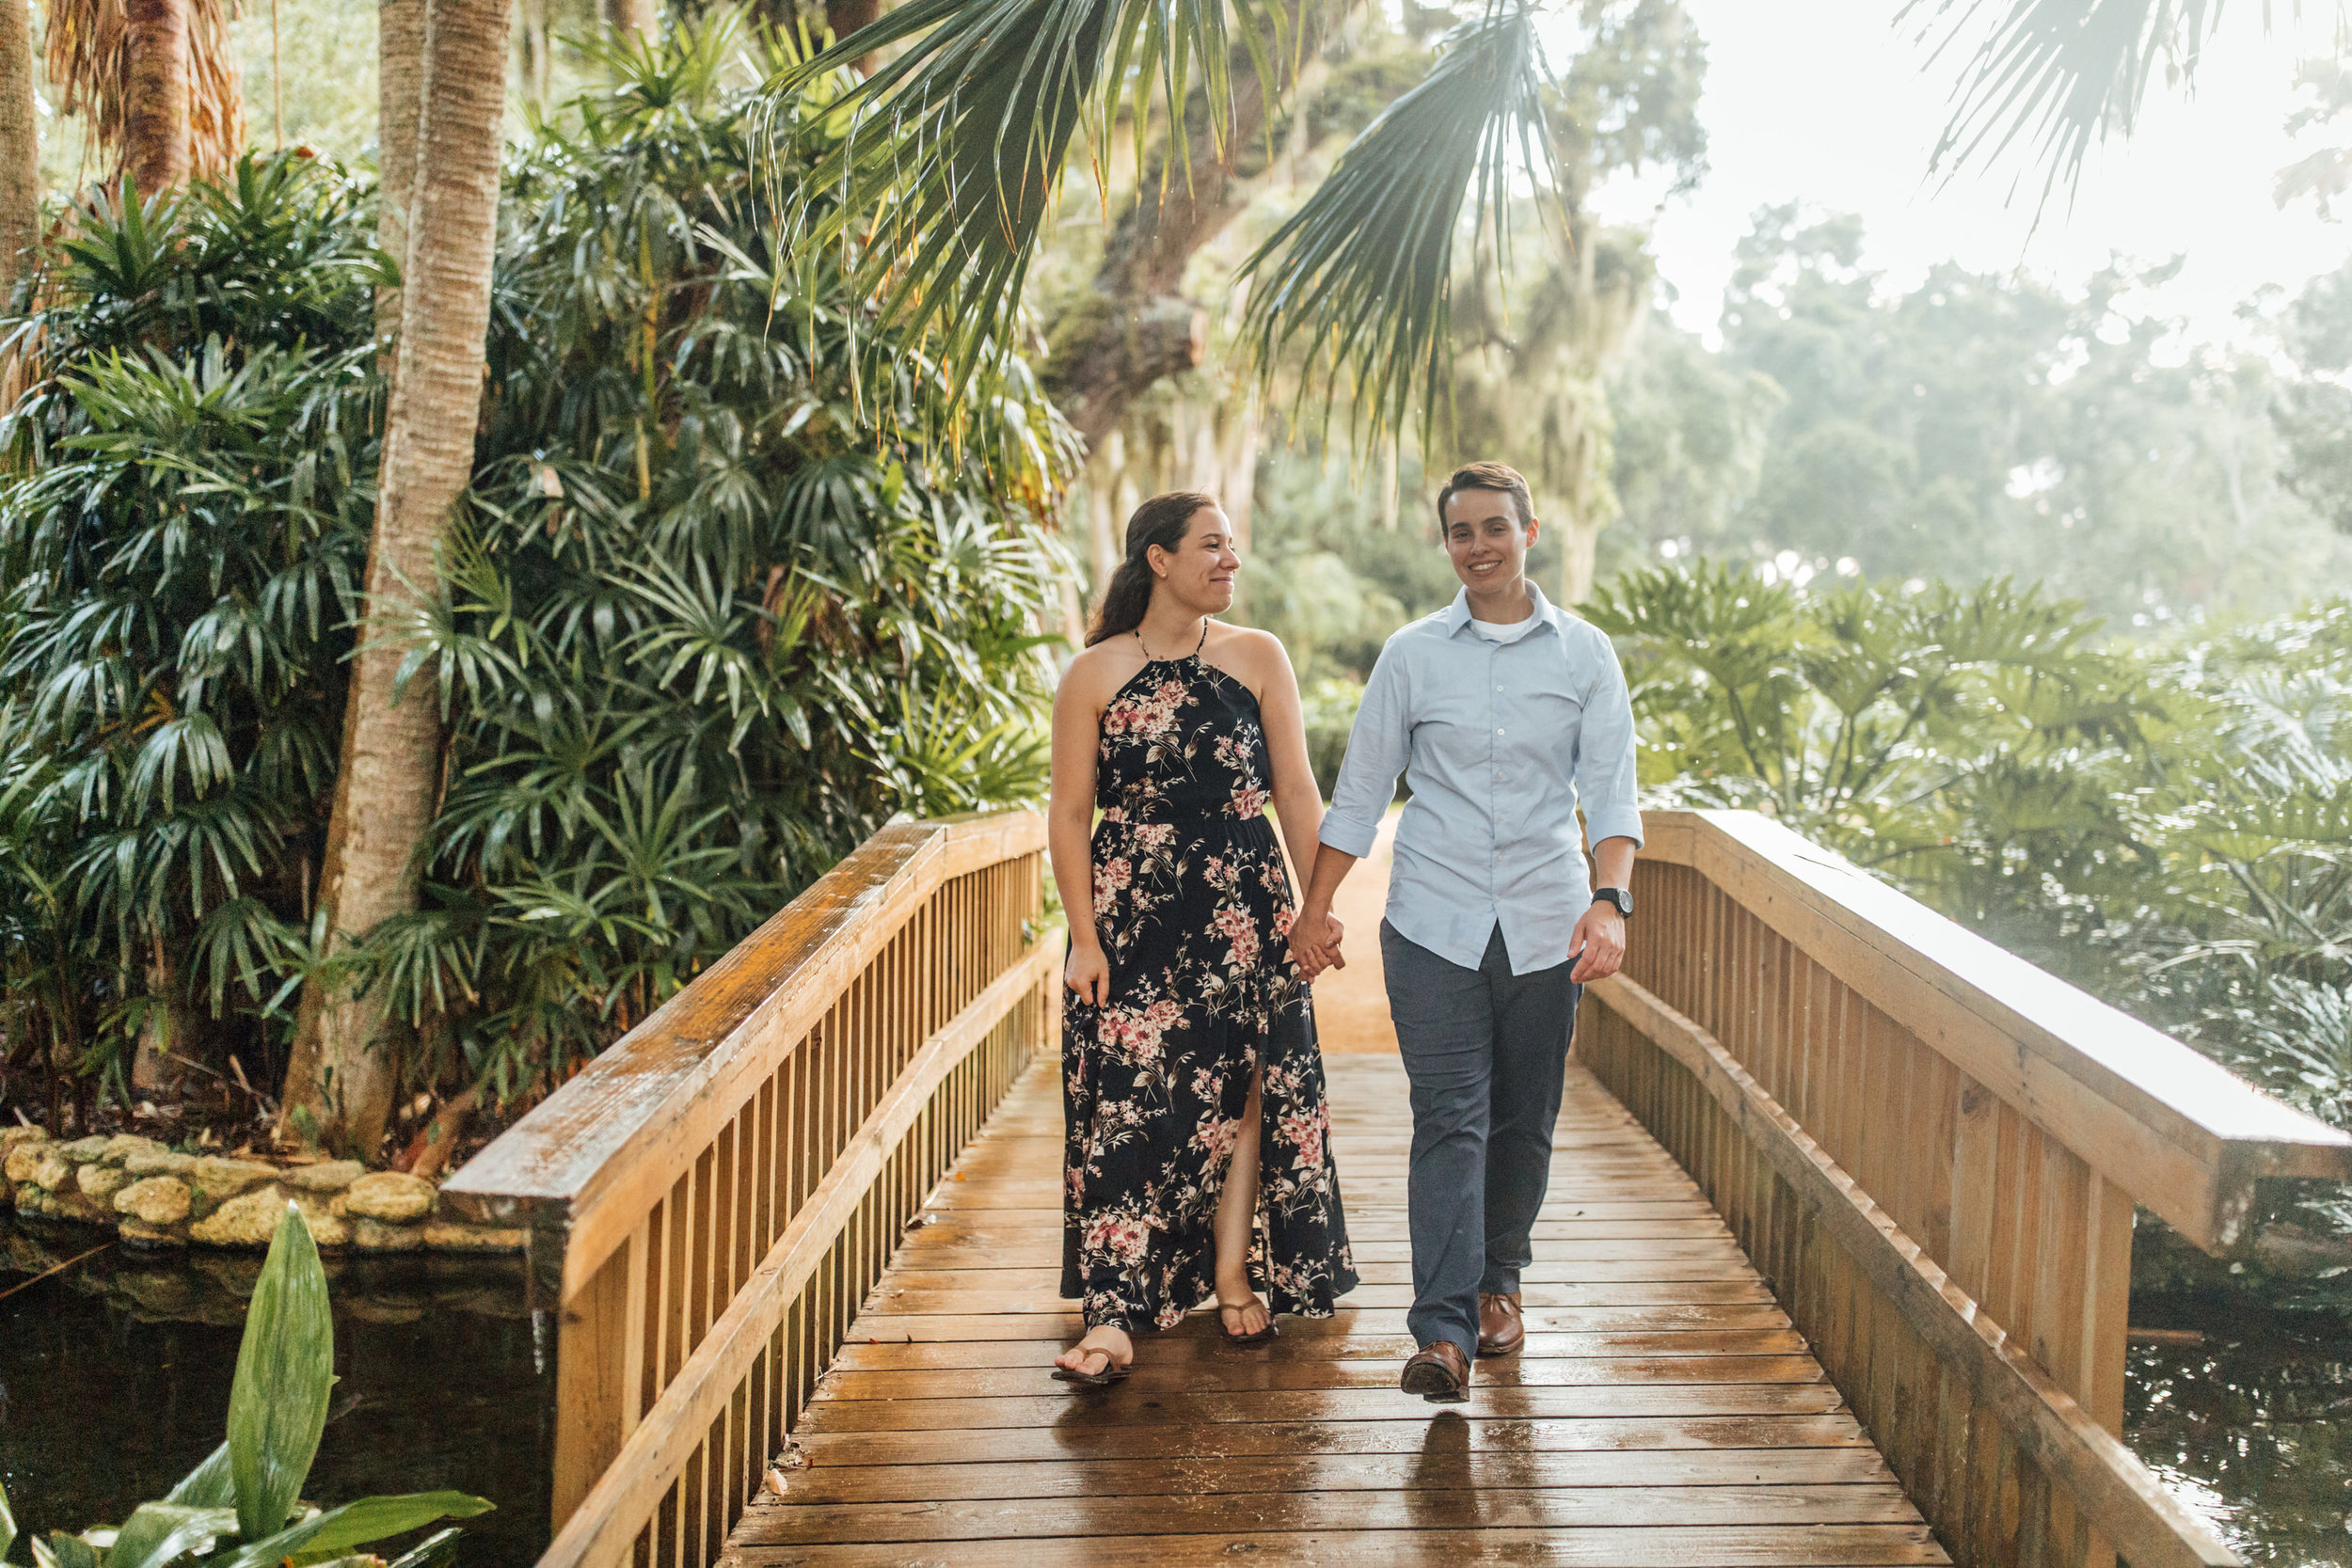 Orlando Natural Forest State Park Engagement Photos- Romantic LGBT Engaged Couples photos99.jpg